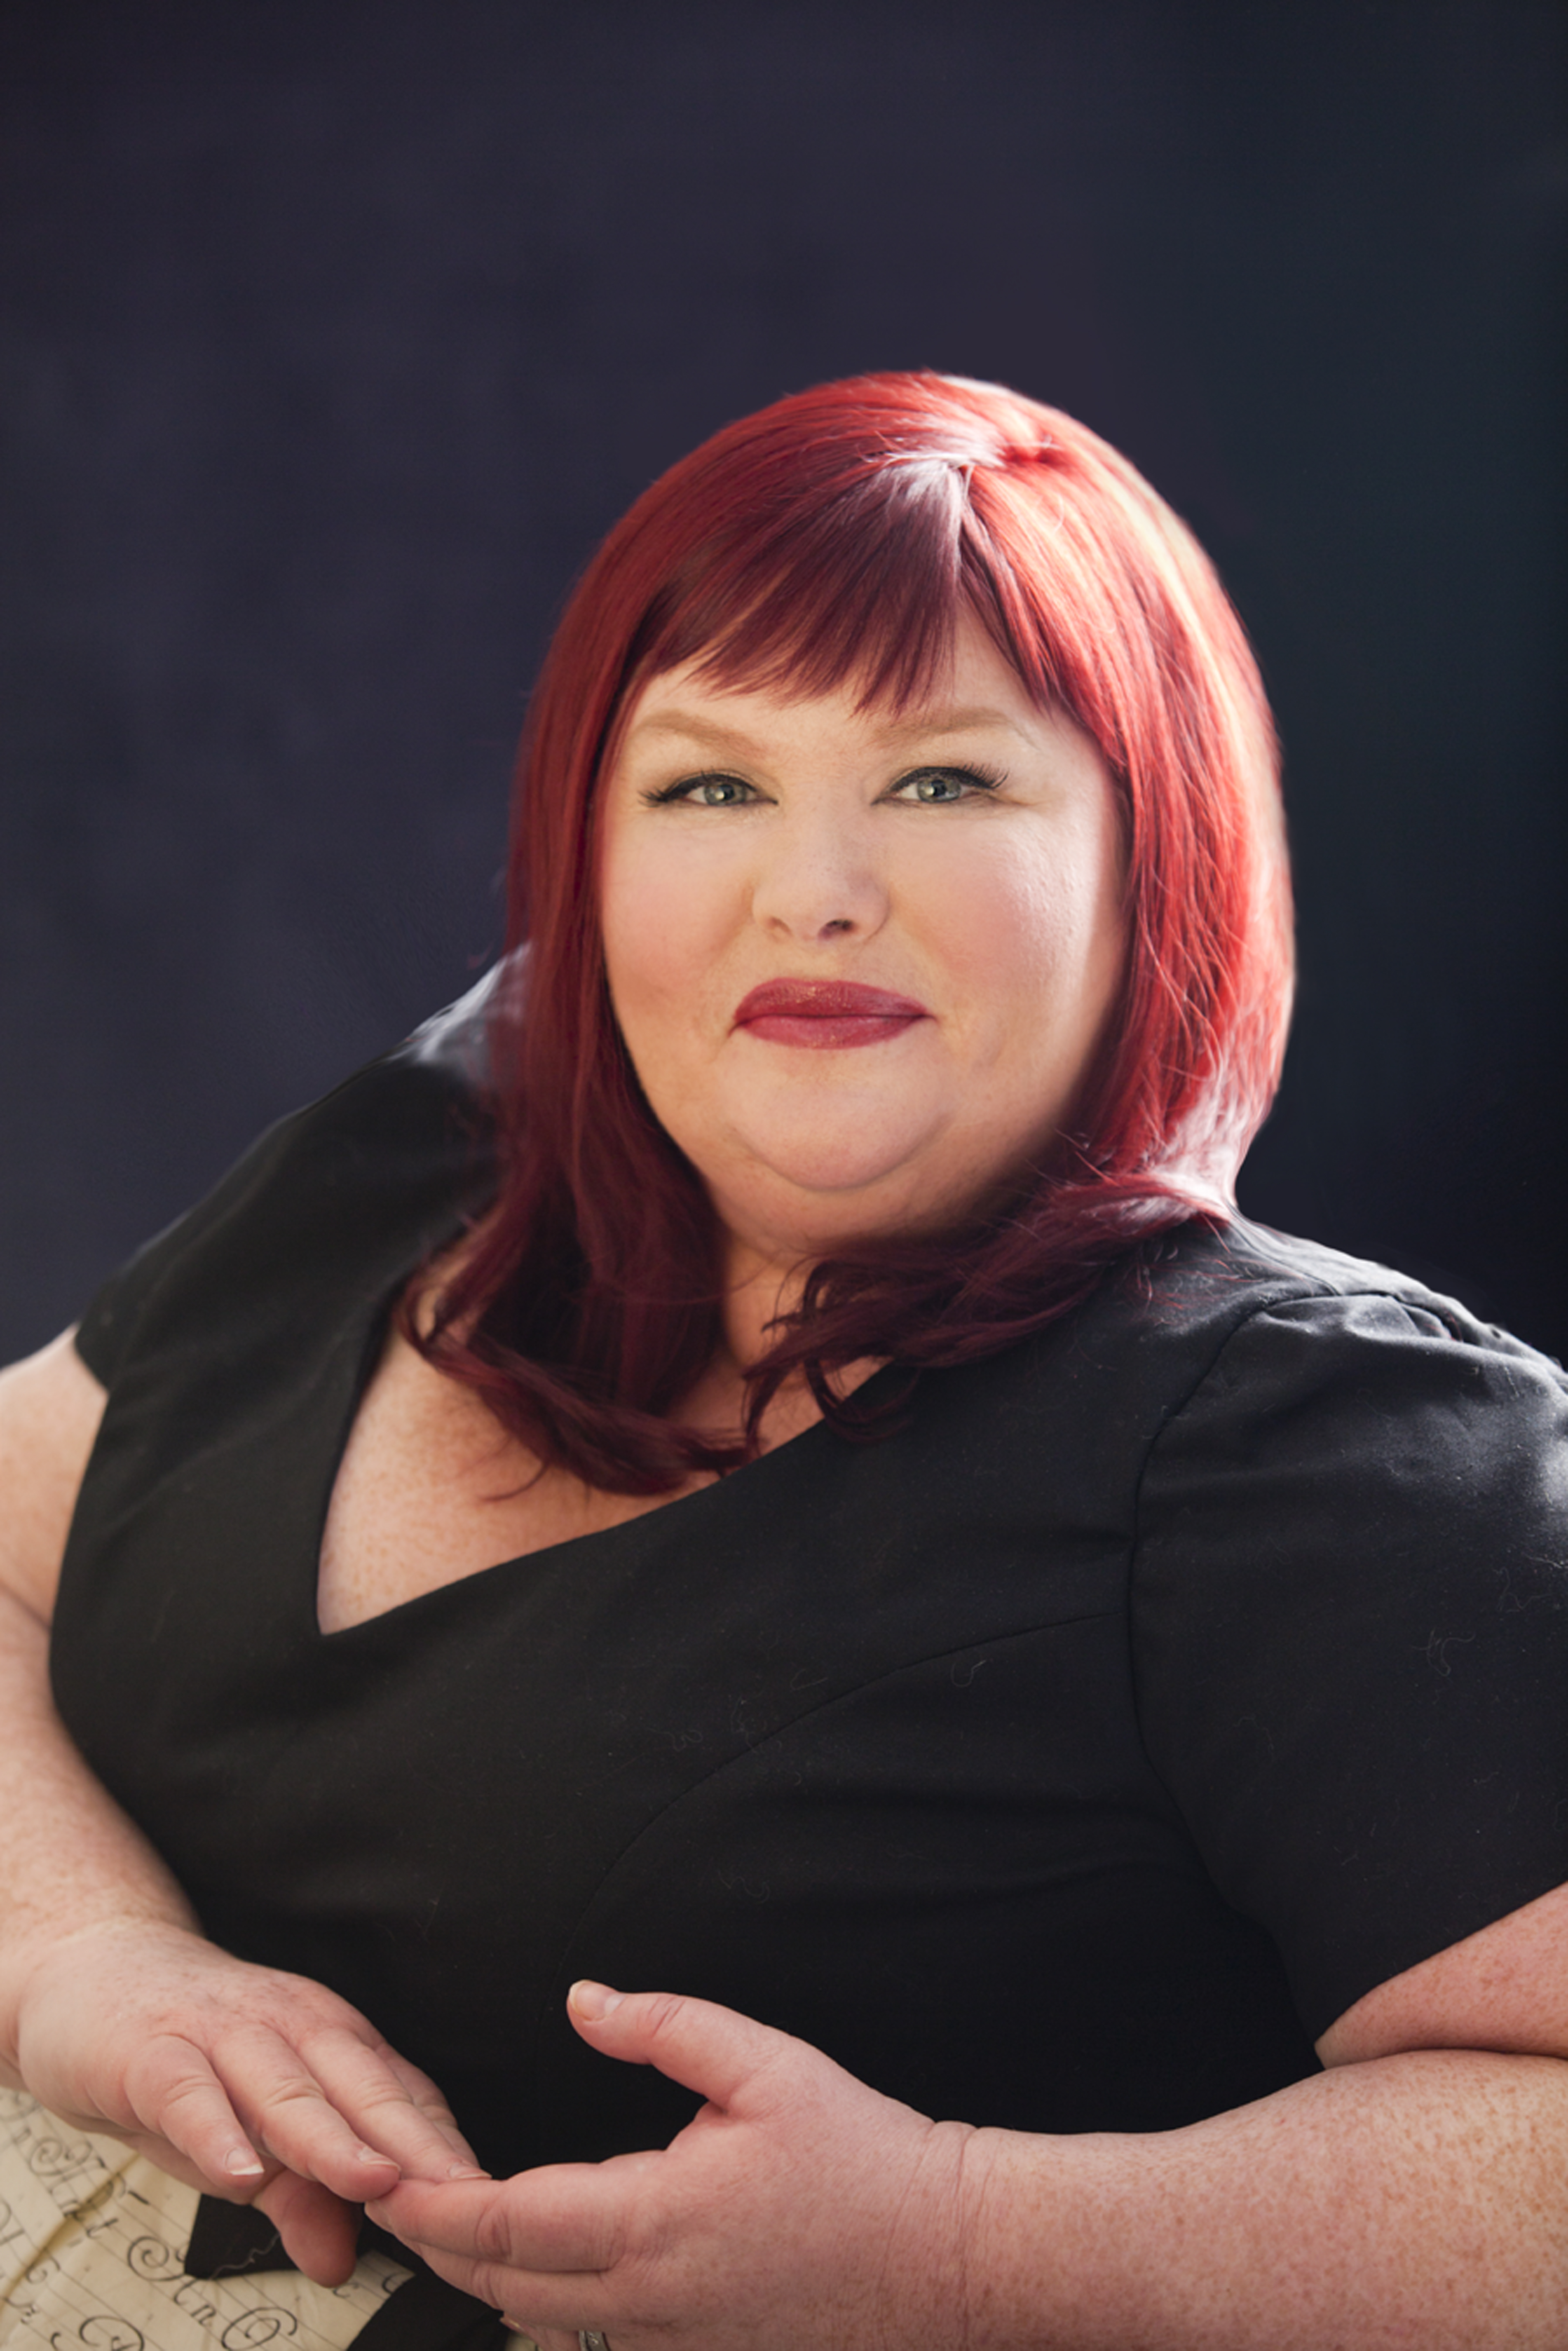 An Interview with 'The Mortal Instruments' Author Cassandra Clare